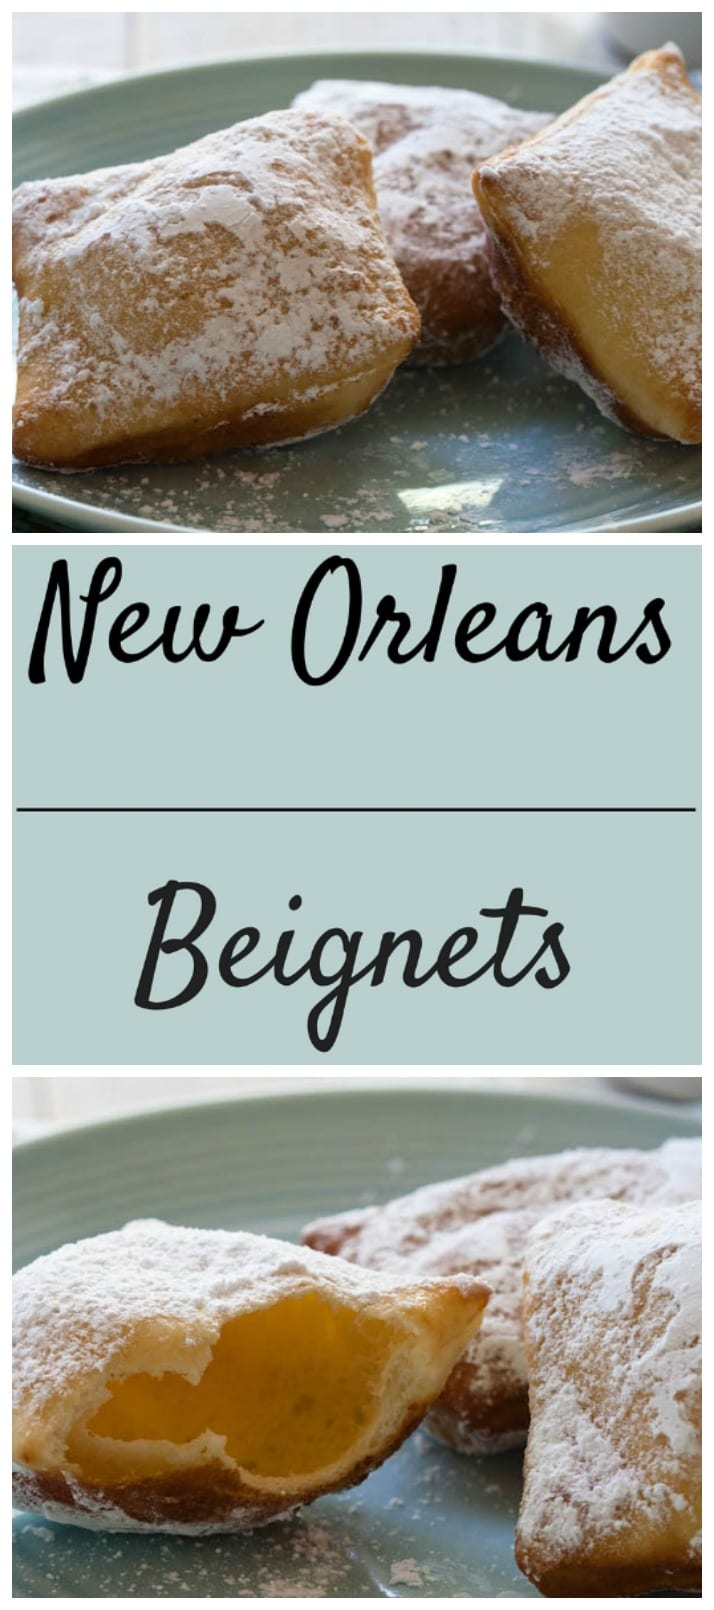 New Orleans Beignets, with step by step instructions.